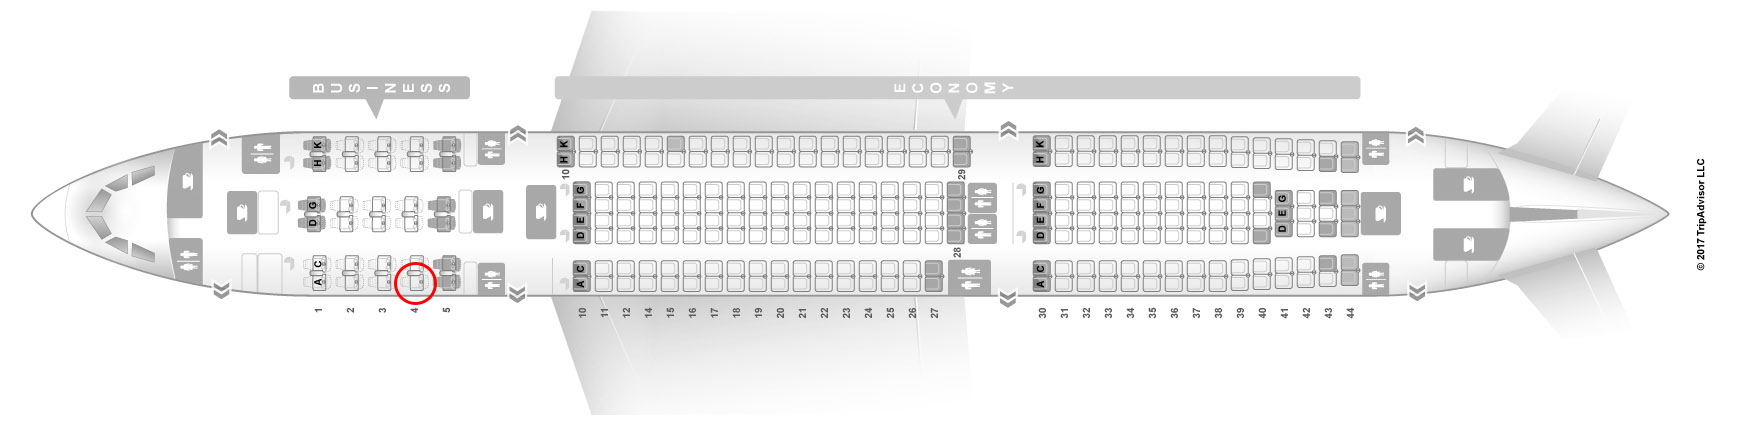 Seat map of this Asiana A330-300